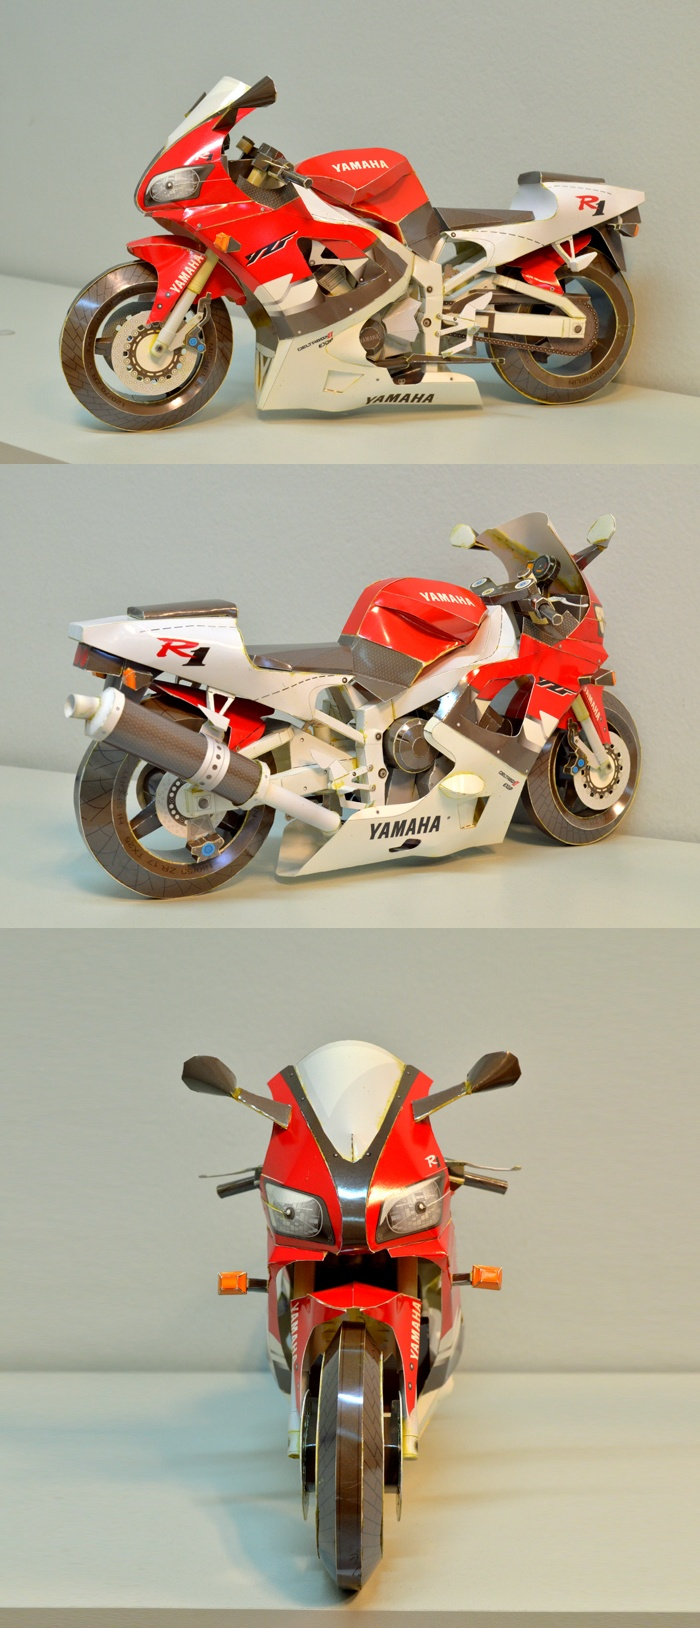 Yamaha yzf r1 made in paper paper craft pinterest yamaha yamaha yzf r1 made in paper paper craft pinterest yamaha yzf r1 and crafts jeuxipadfo Choice Image